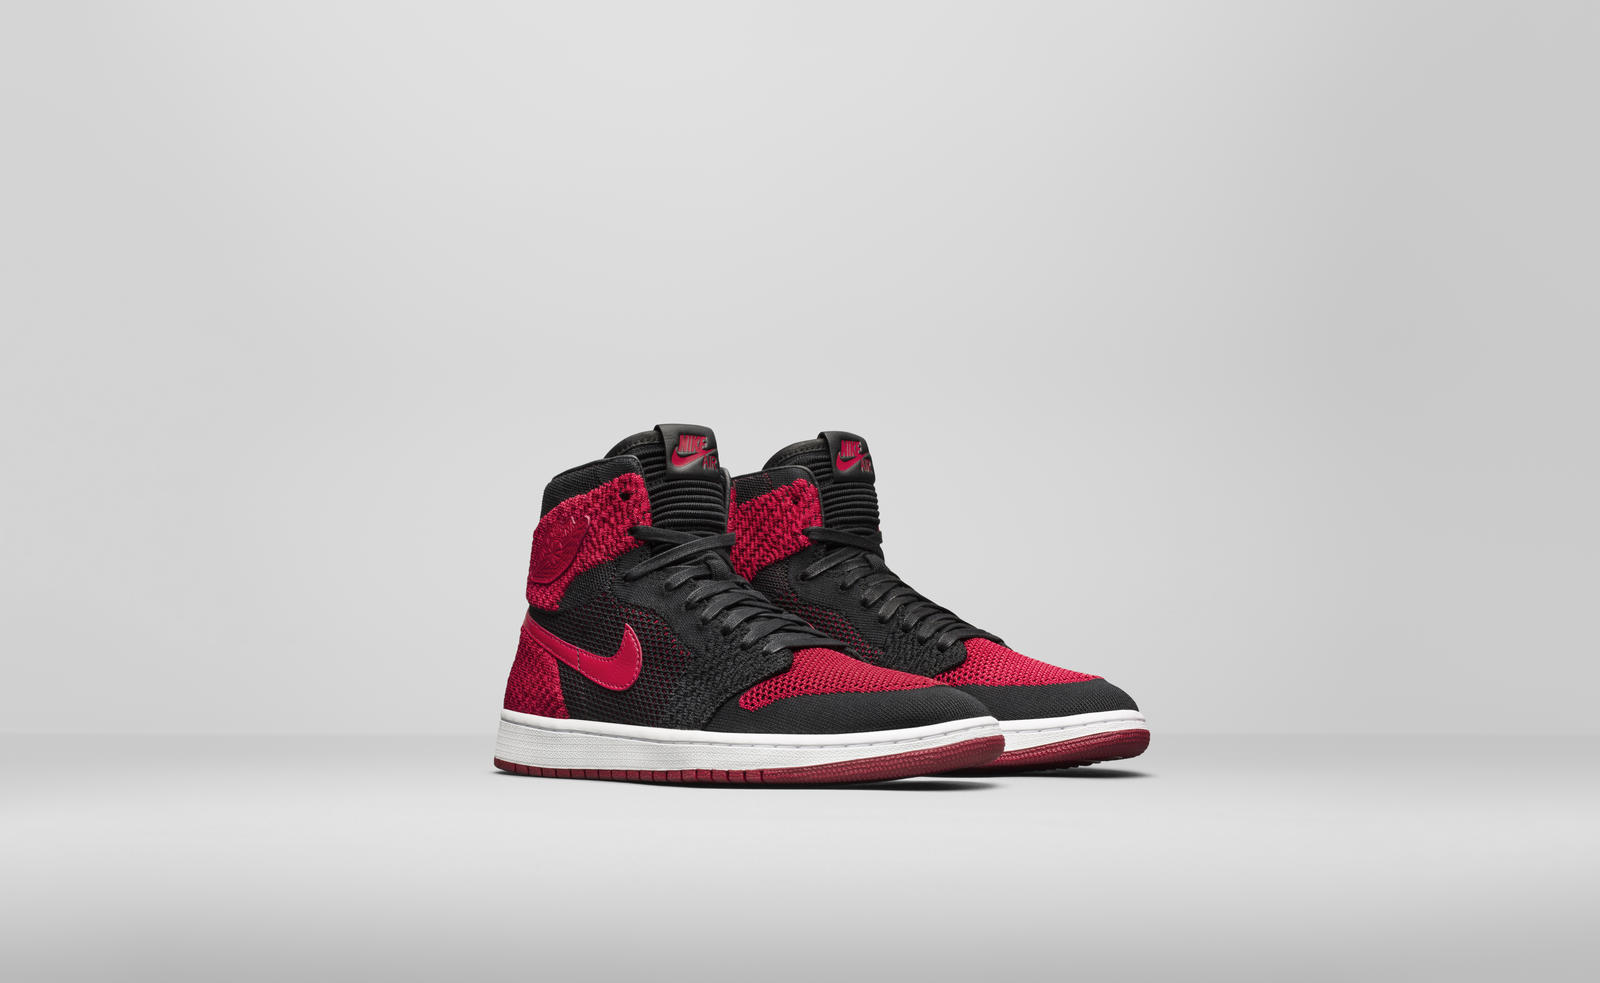 When the Air Jordan 1 was introduced in 1985 it utilized the era's best materials and technologies. While basketball footwear has continued to evolve, ...